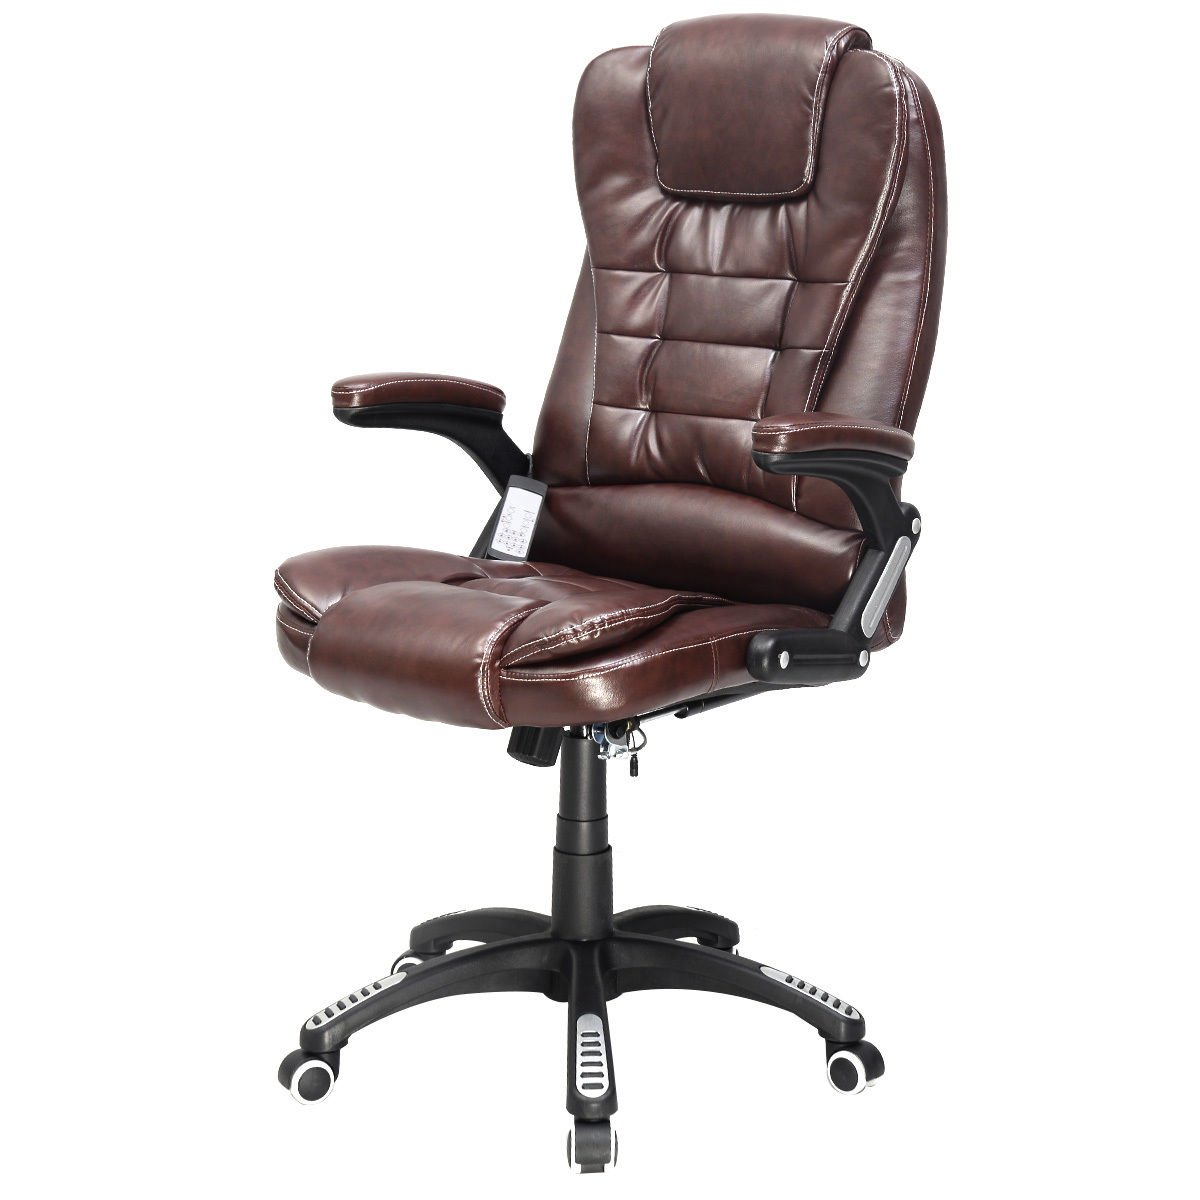 Goplus Brown Executive Ergonomic Computer Desk Massage Chair Vibrating Home Office New